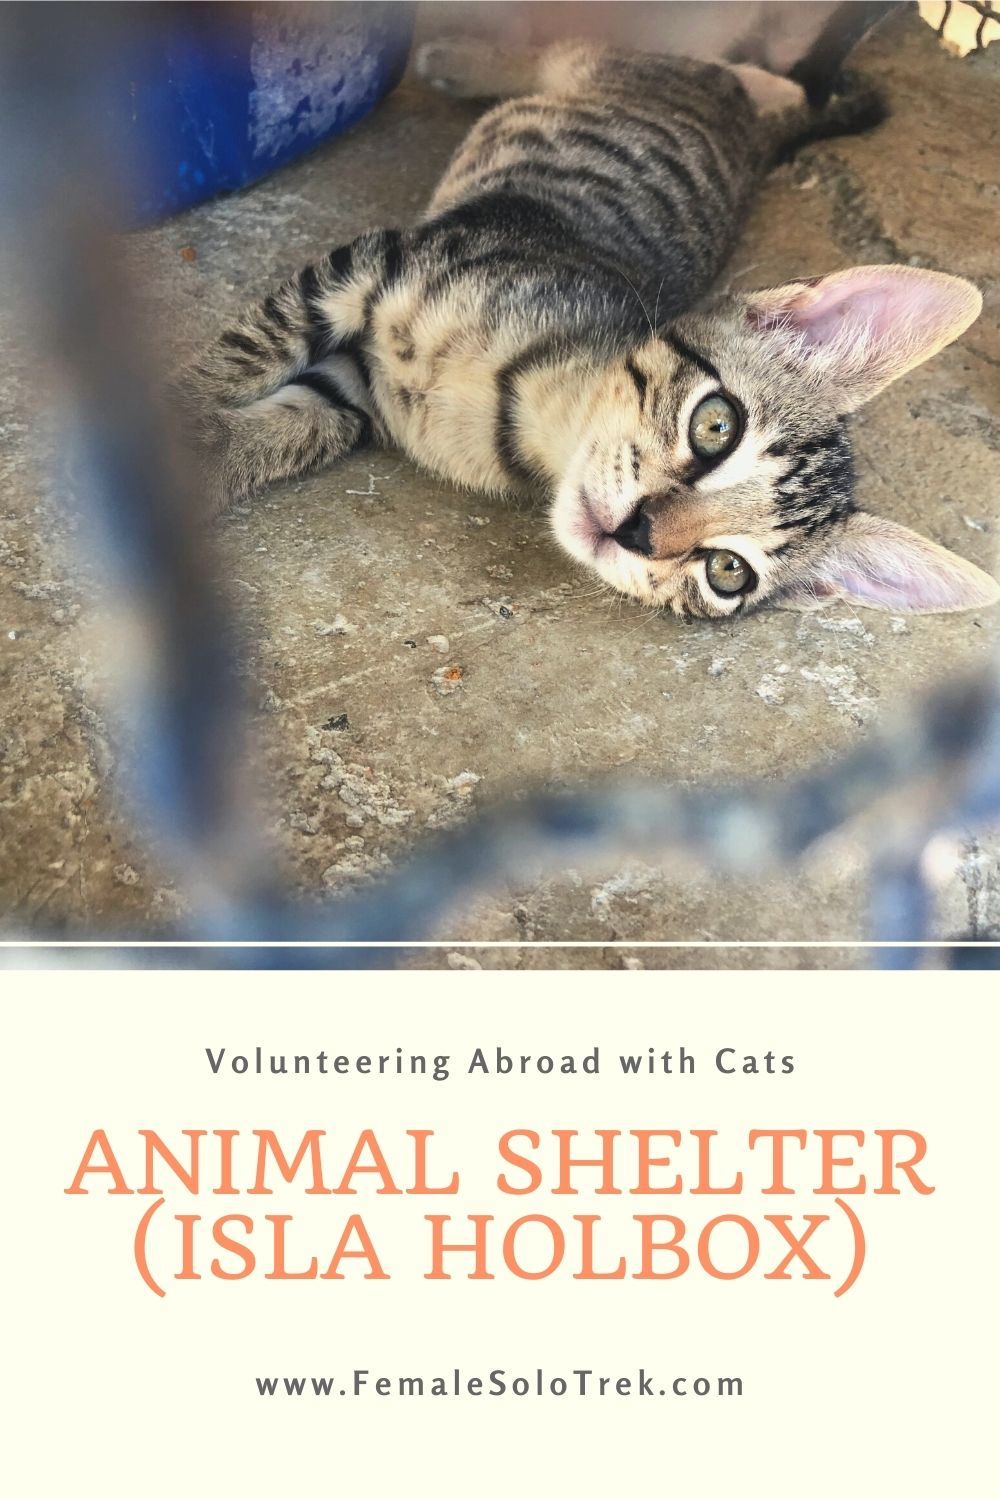 Volunteering Abroad with cats is a wonderful activity on a vacation.